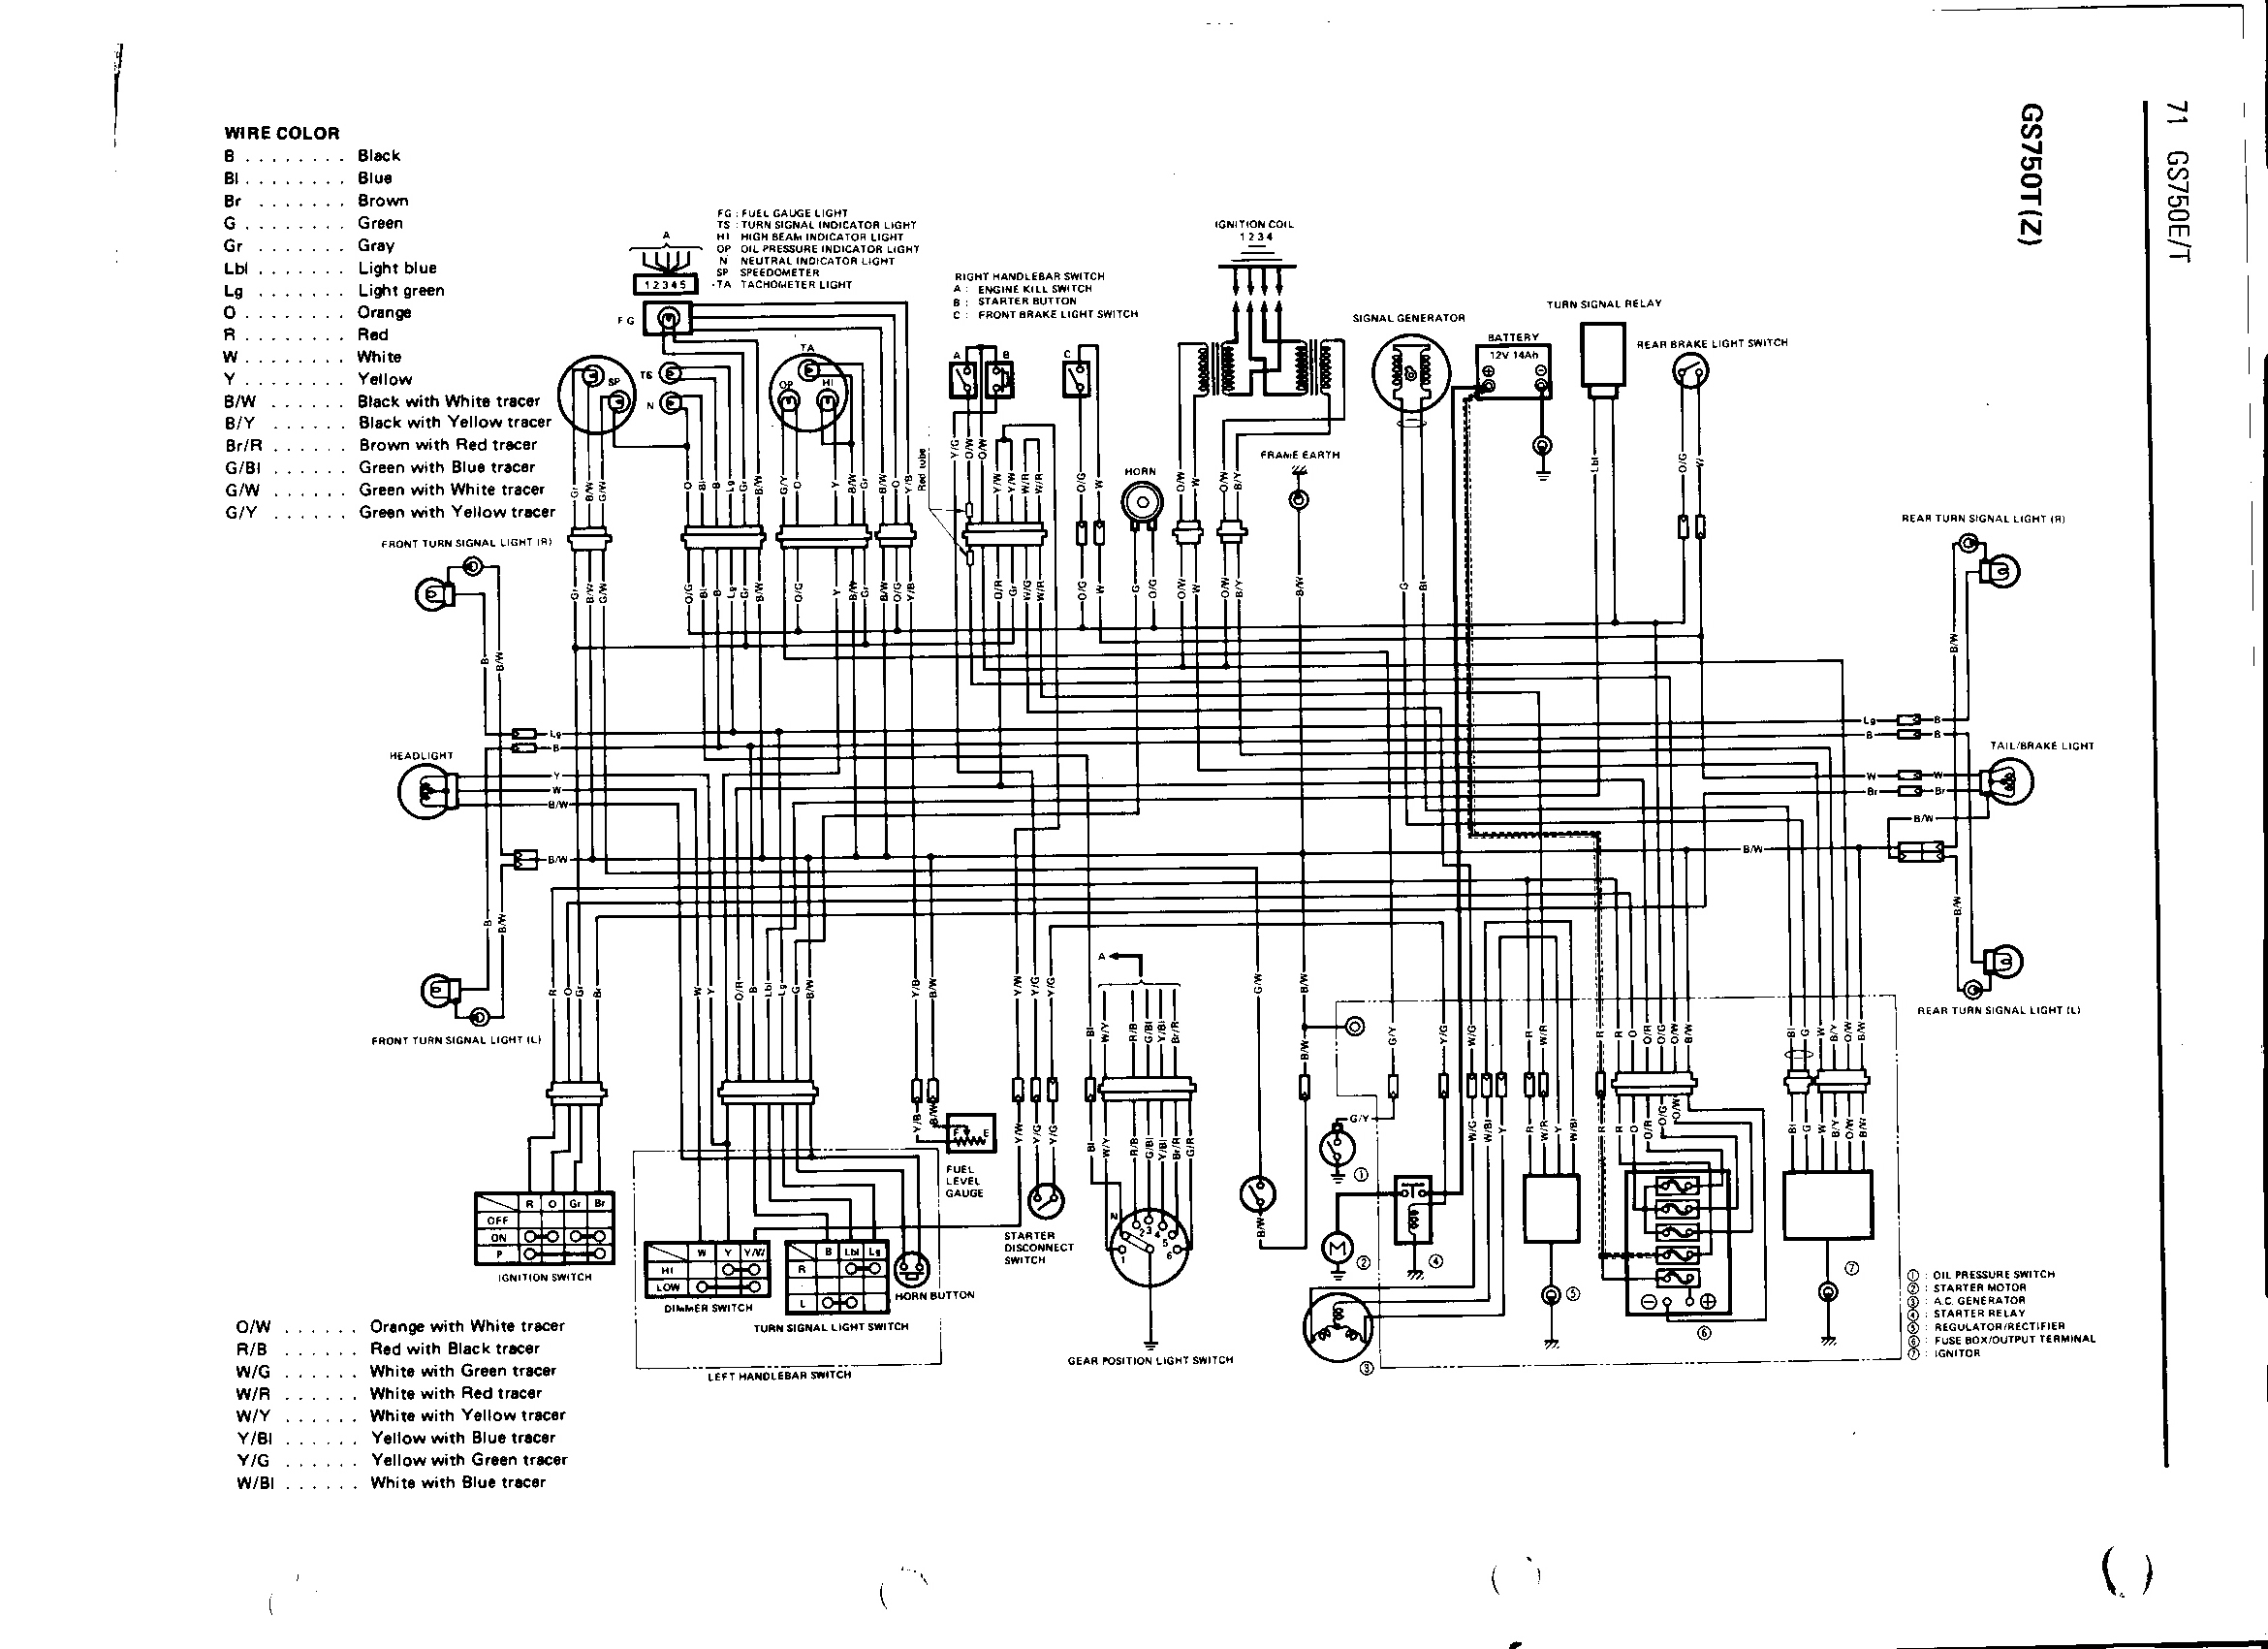 1980 suzuki gs1000 wiring diagram